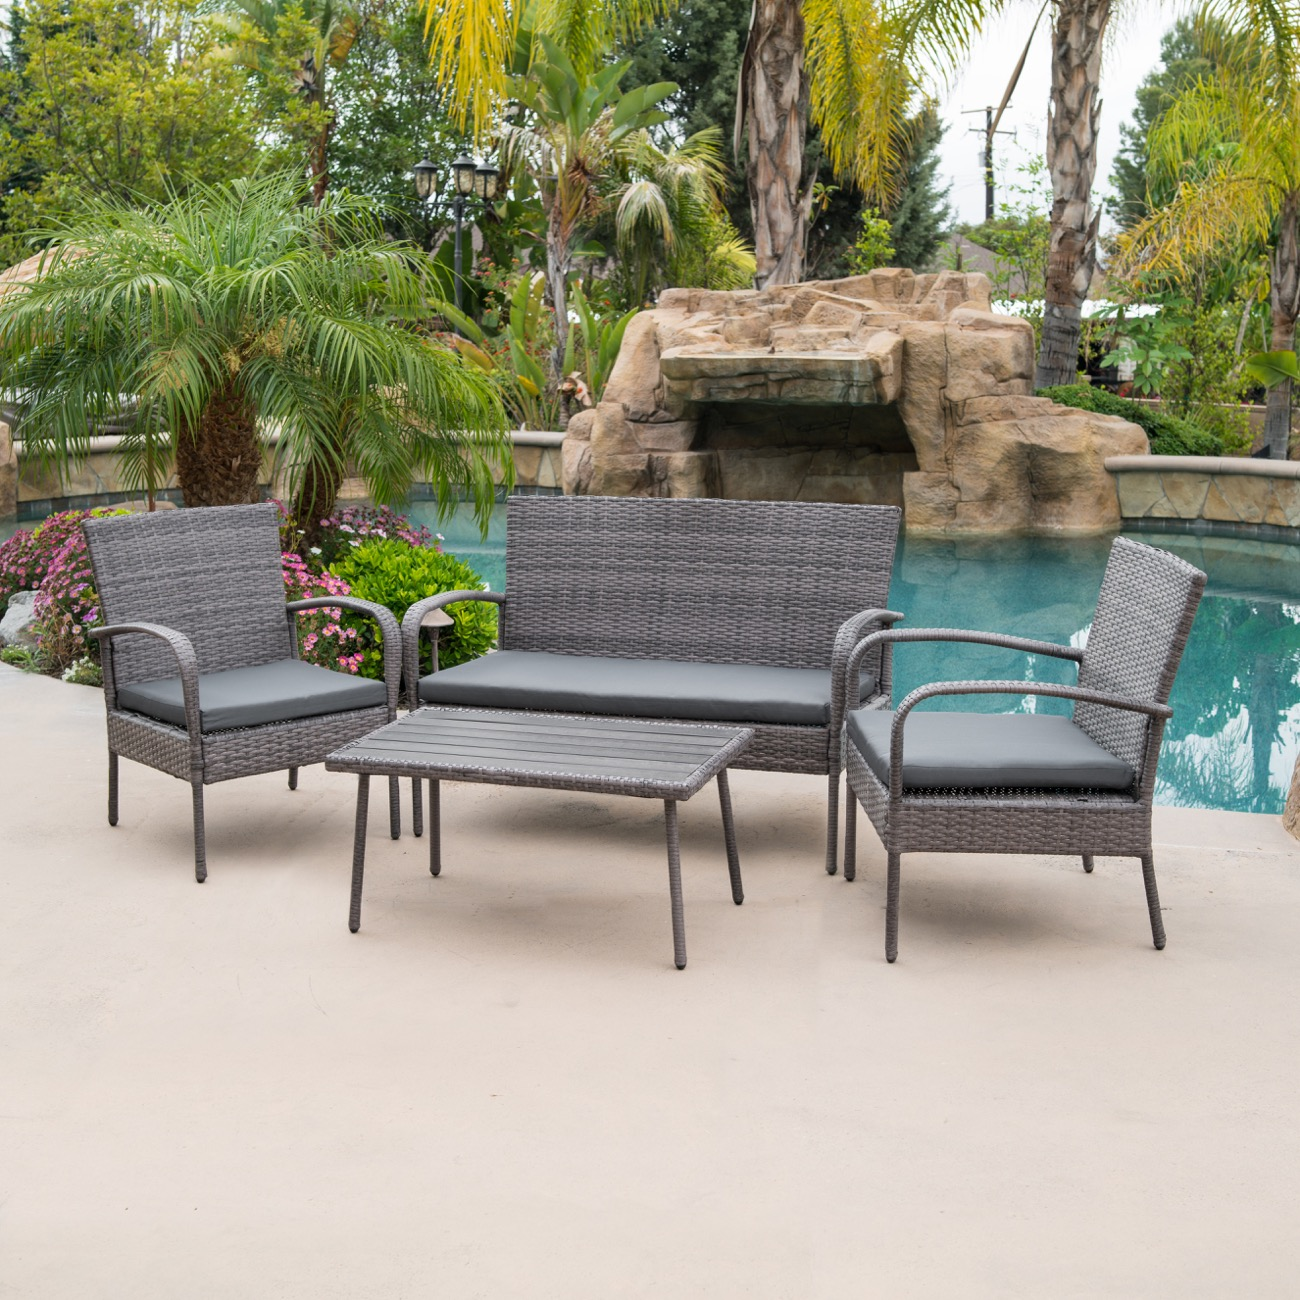 4 PC Wicker Outdoor Patio Set Water Proof Fabric Cushion Outdoor Set Table Gray & 4 Piece Outdoor Patio Wicker Set All Weather Rectangular Table ...